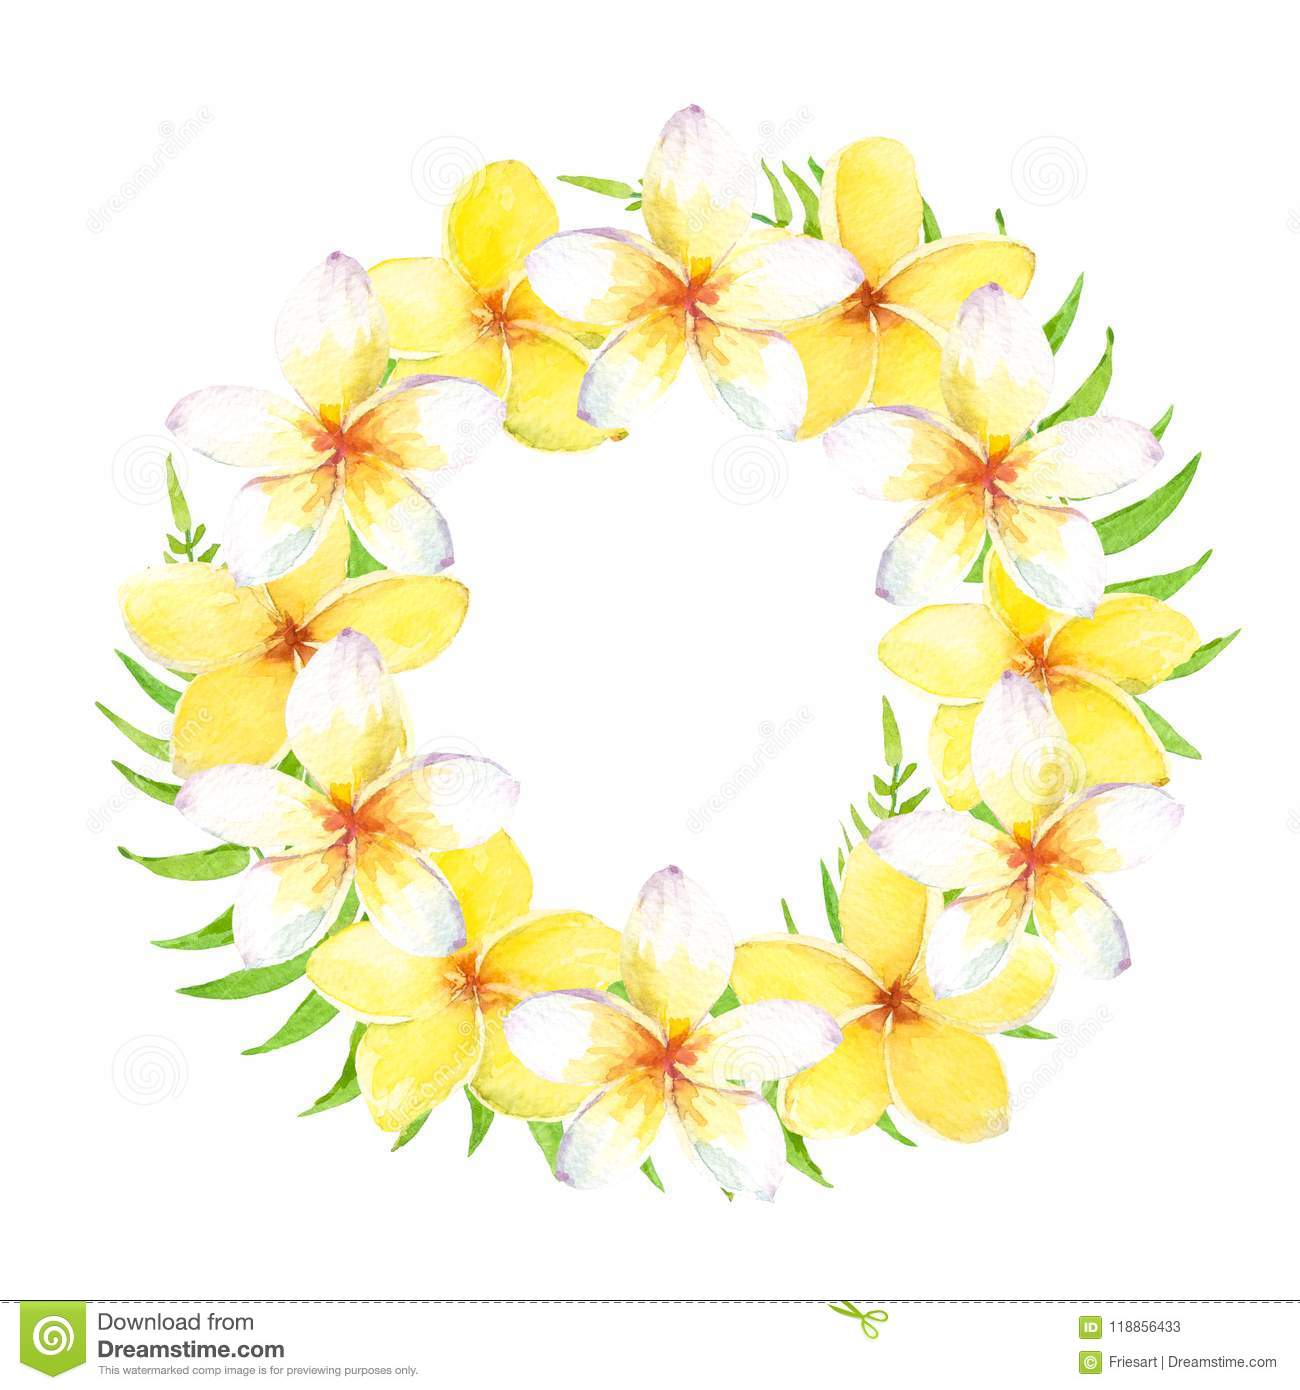 Watercolor Tropical Wreath With Plumeria Flowers And Leaves. Can Be ...